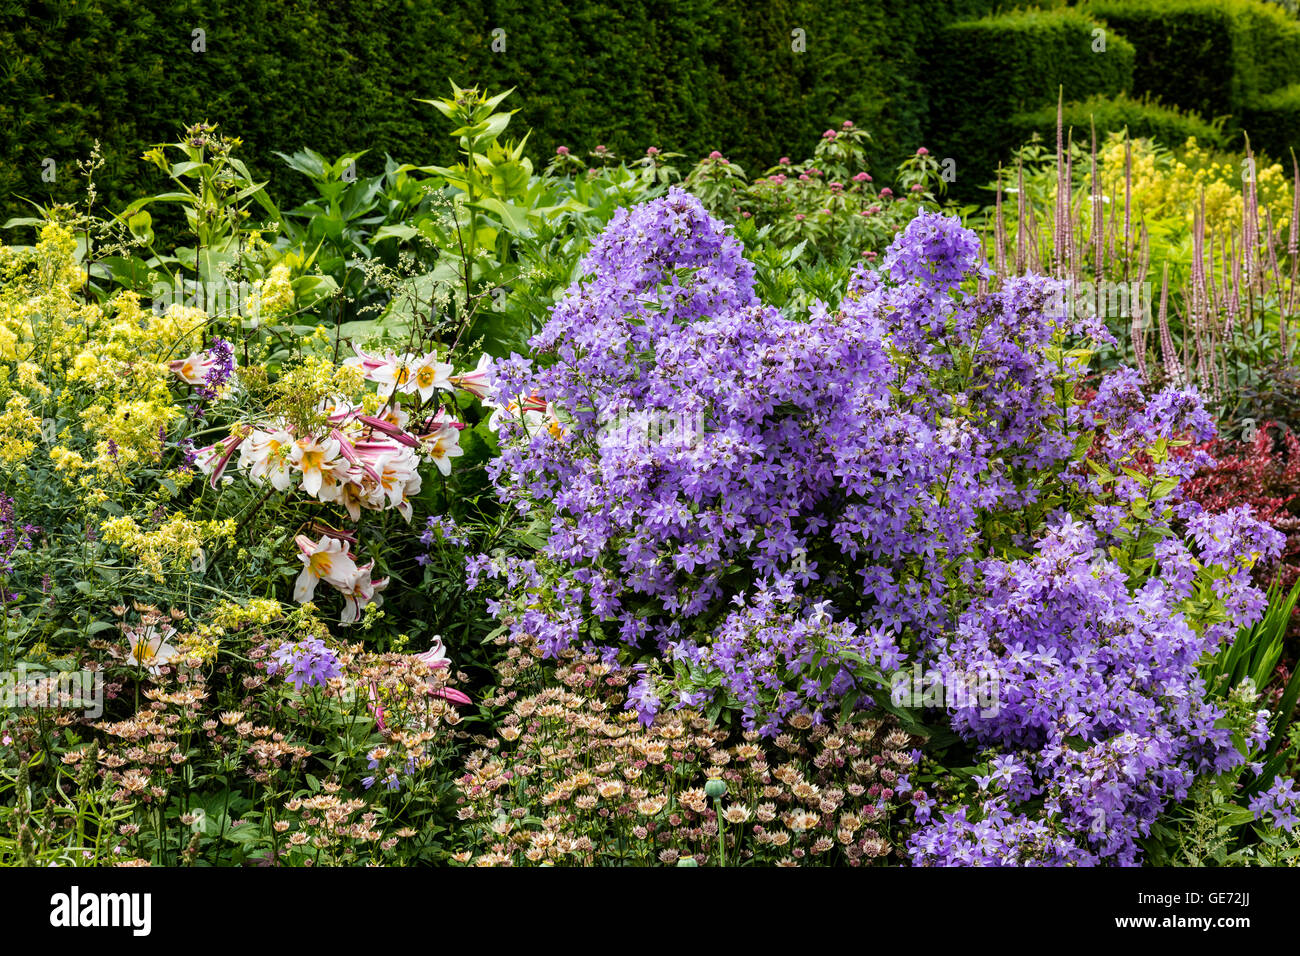 Summer flowers lilies, campanula and astrantia in a well stocked herbaceous border. - Stock Image